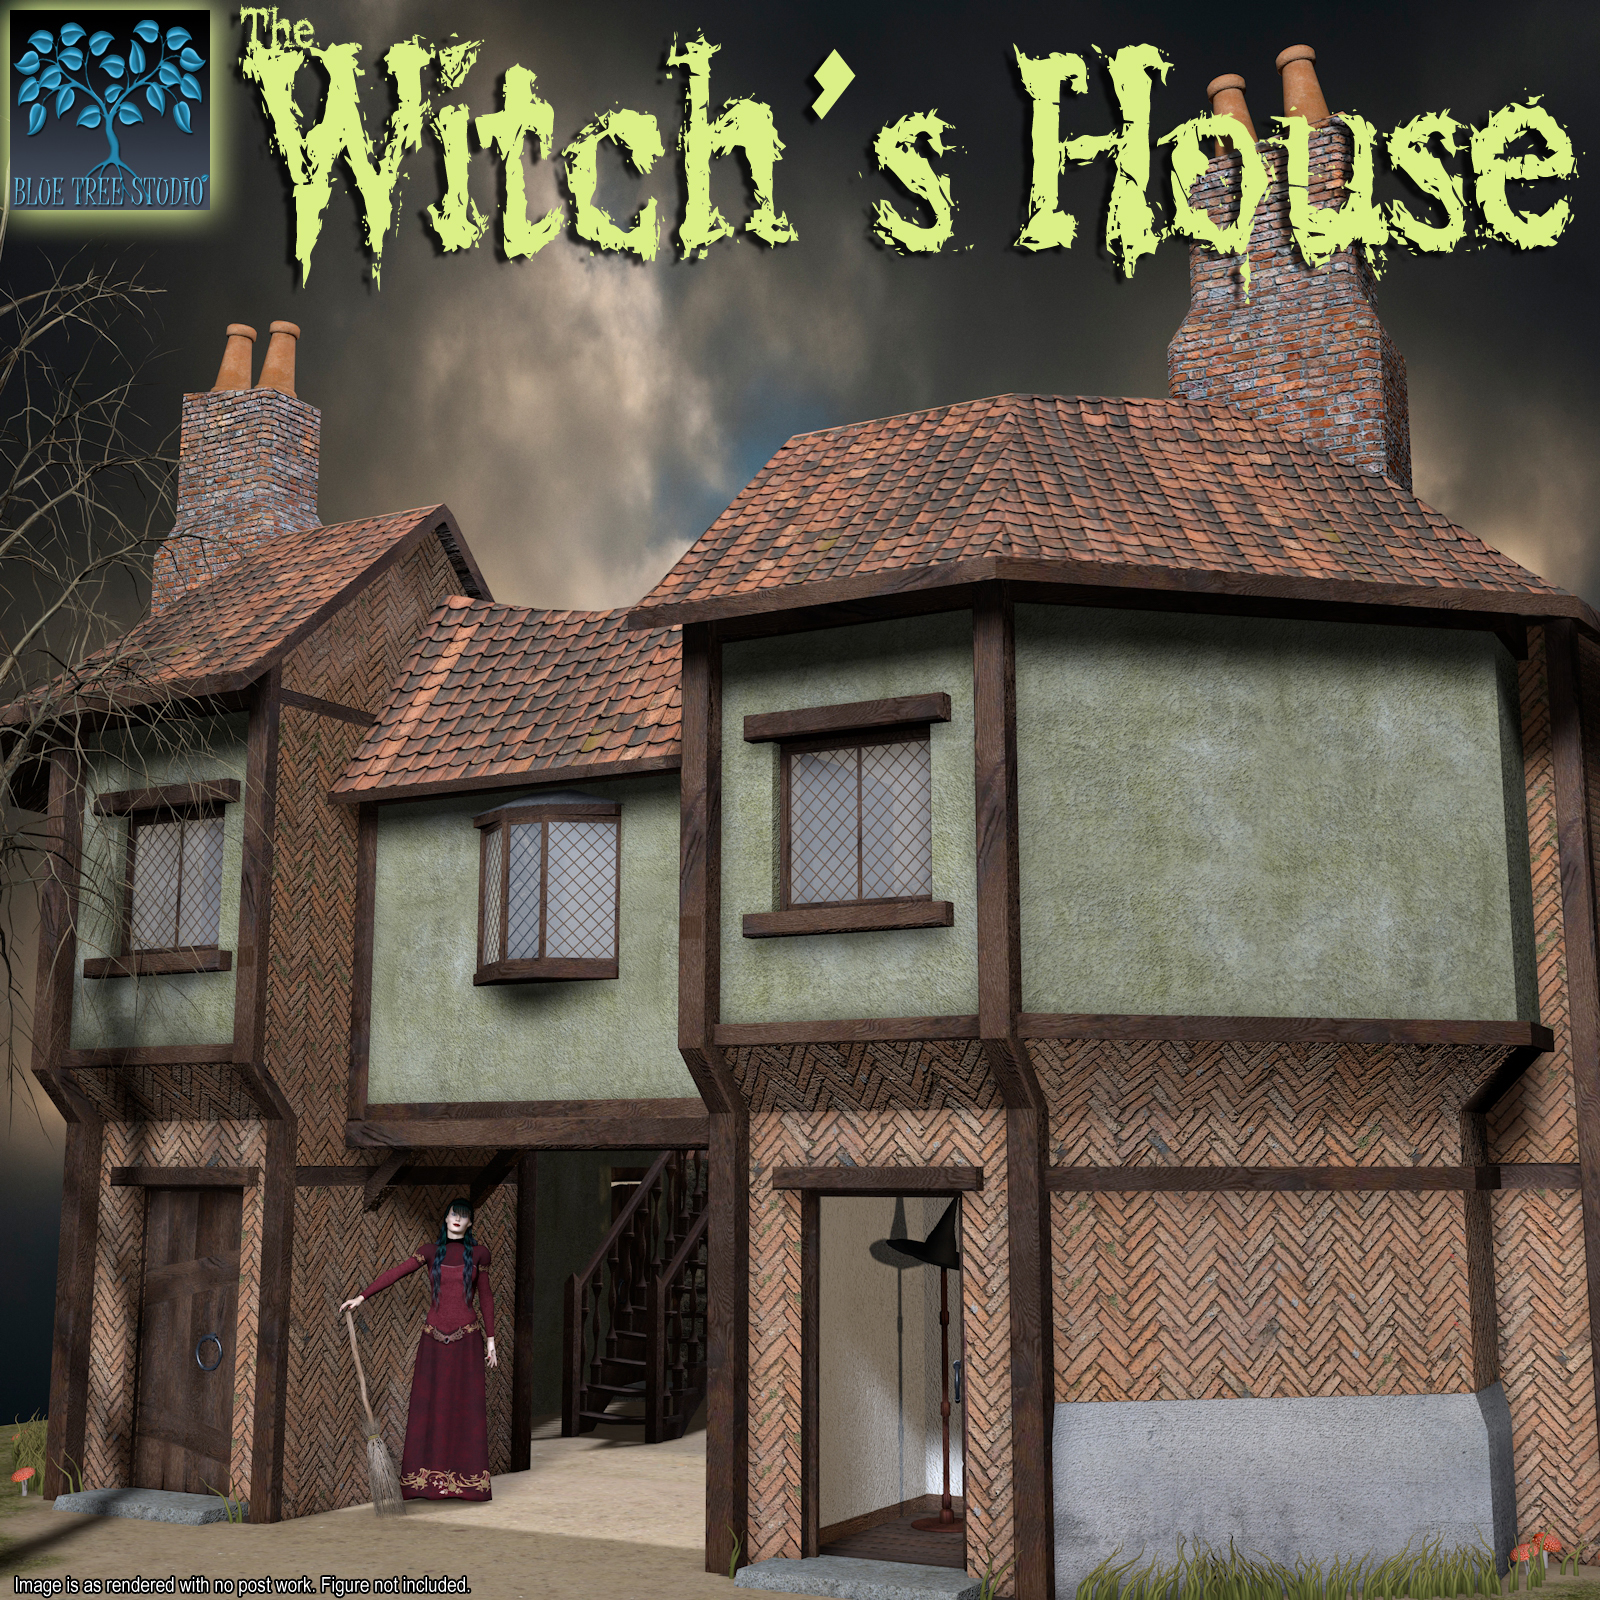 Witch's House by BlueTreeStudio